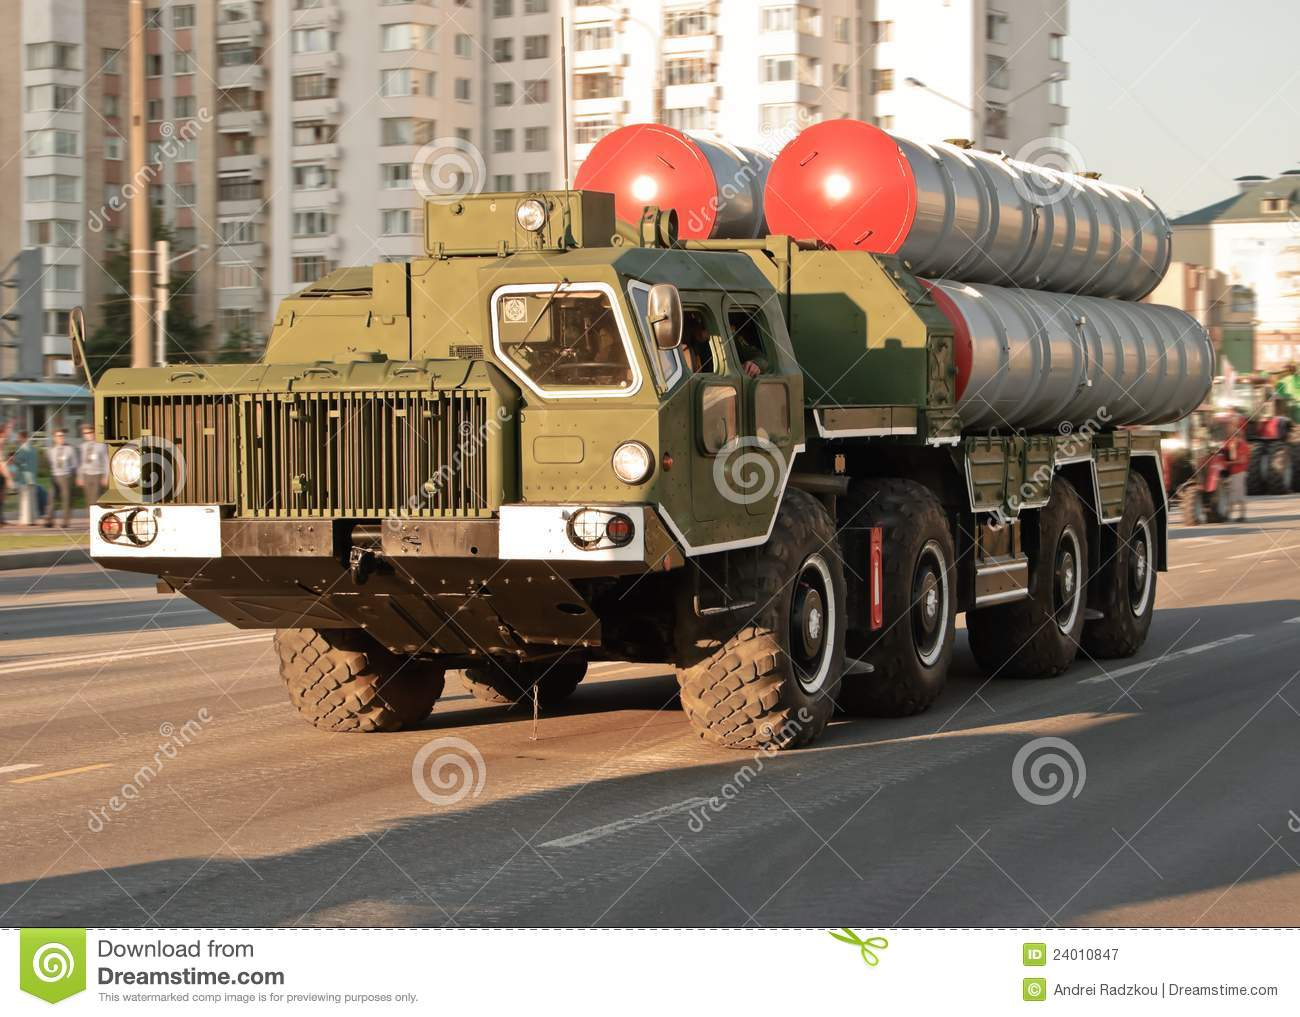 Washington The Testing Is Aimed At Addressing Most Cur Air Defense Missile Threats Such As Russian Made Systems And Also Foc On Potential